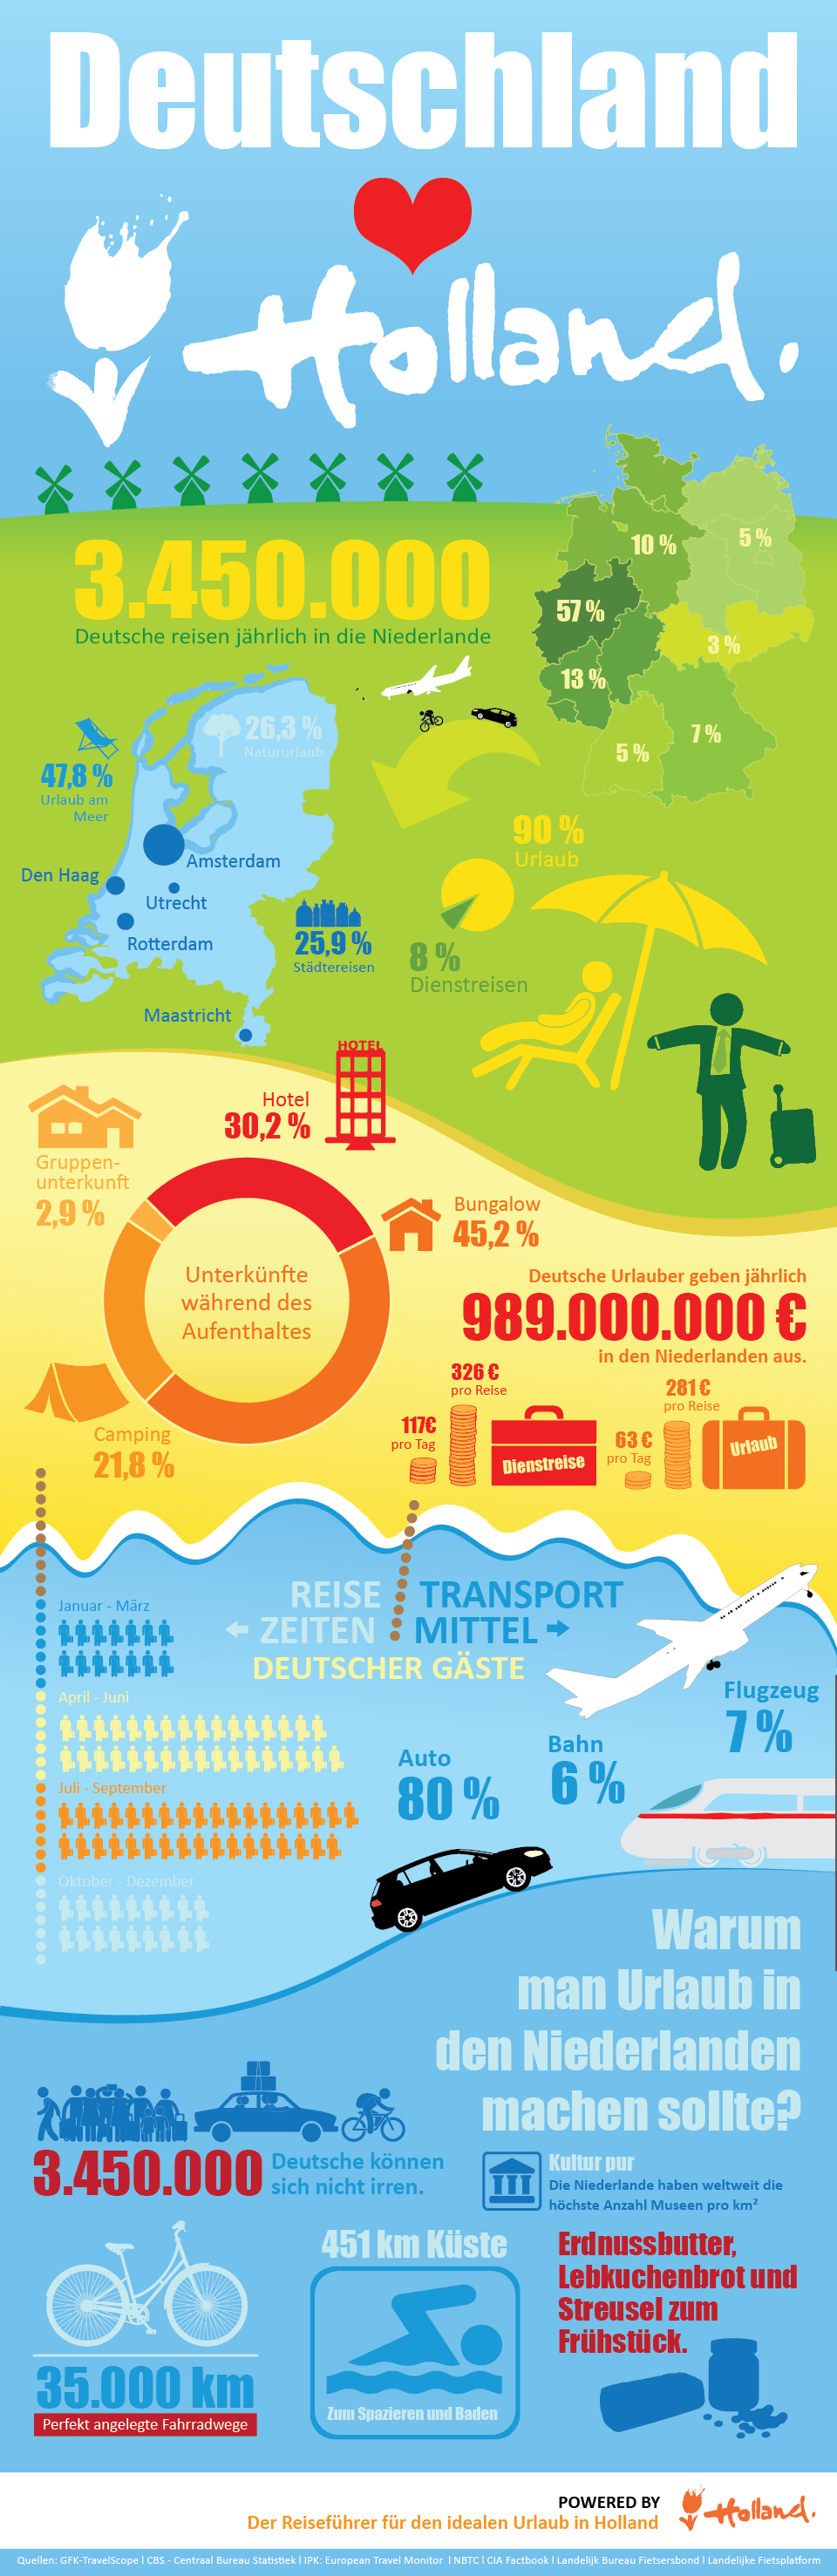 Holland.com_Infografik